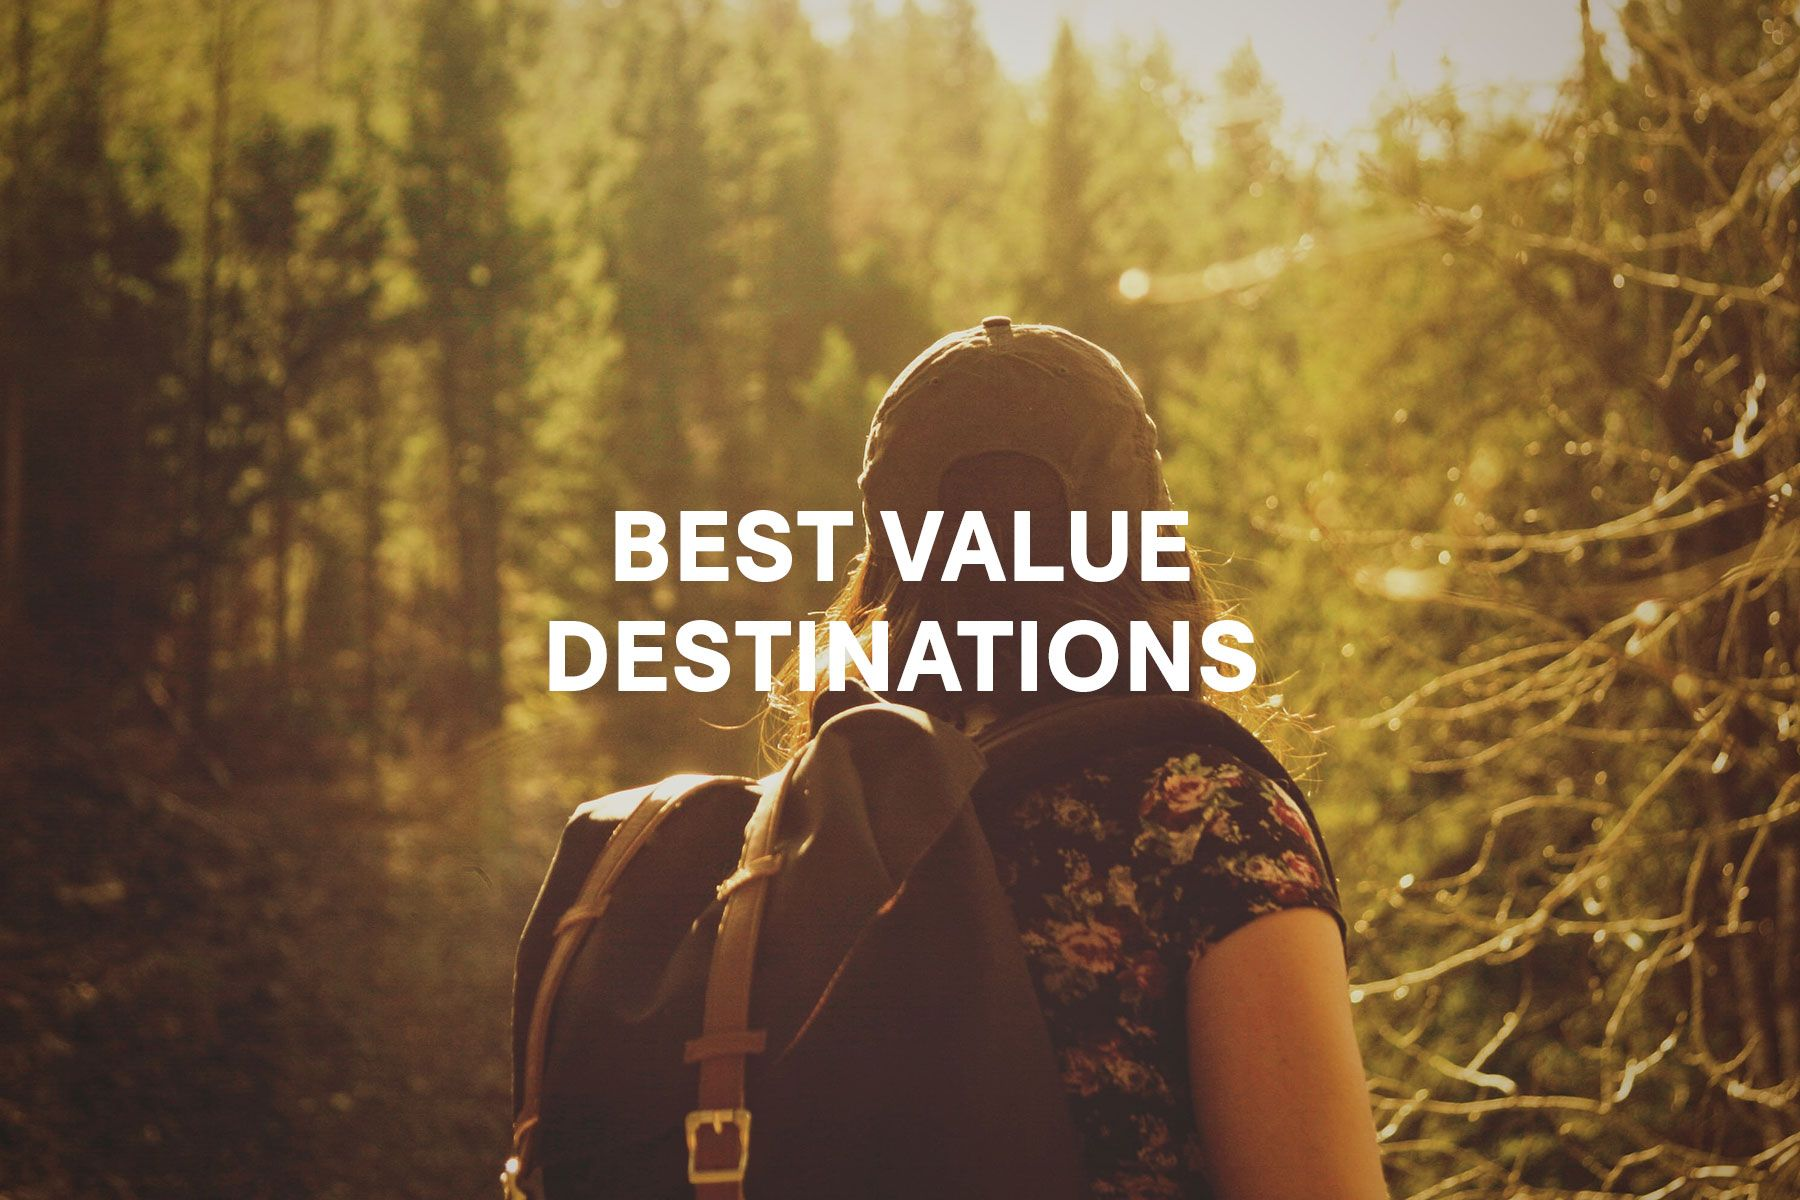 Best Value Destinations